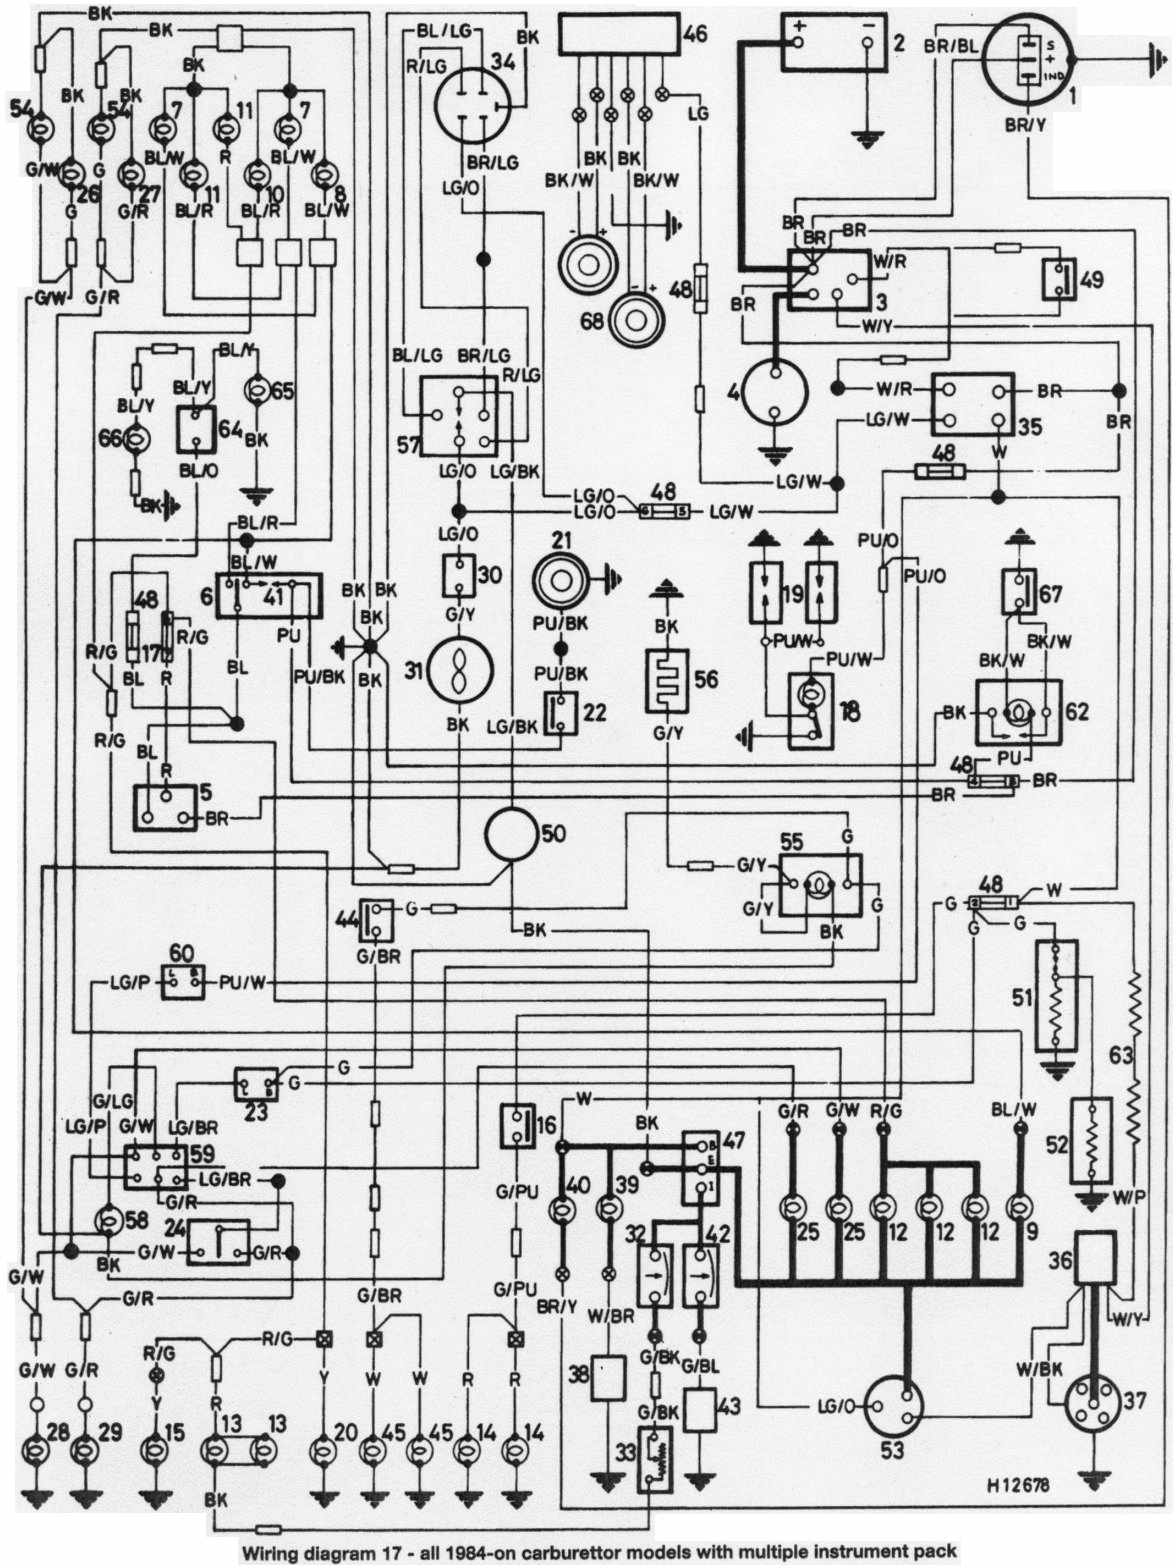 wiring diagram of 1984 onwards all mini series with multiple instrument pack?t\=1508499130 bmw mini wiring diagram gem e2 wiring diagrams \u2022 wiring diagrams 1984 bmw 318i wiring diagrams at nearapp.co